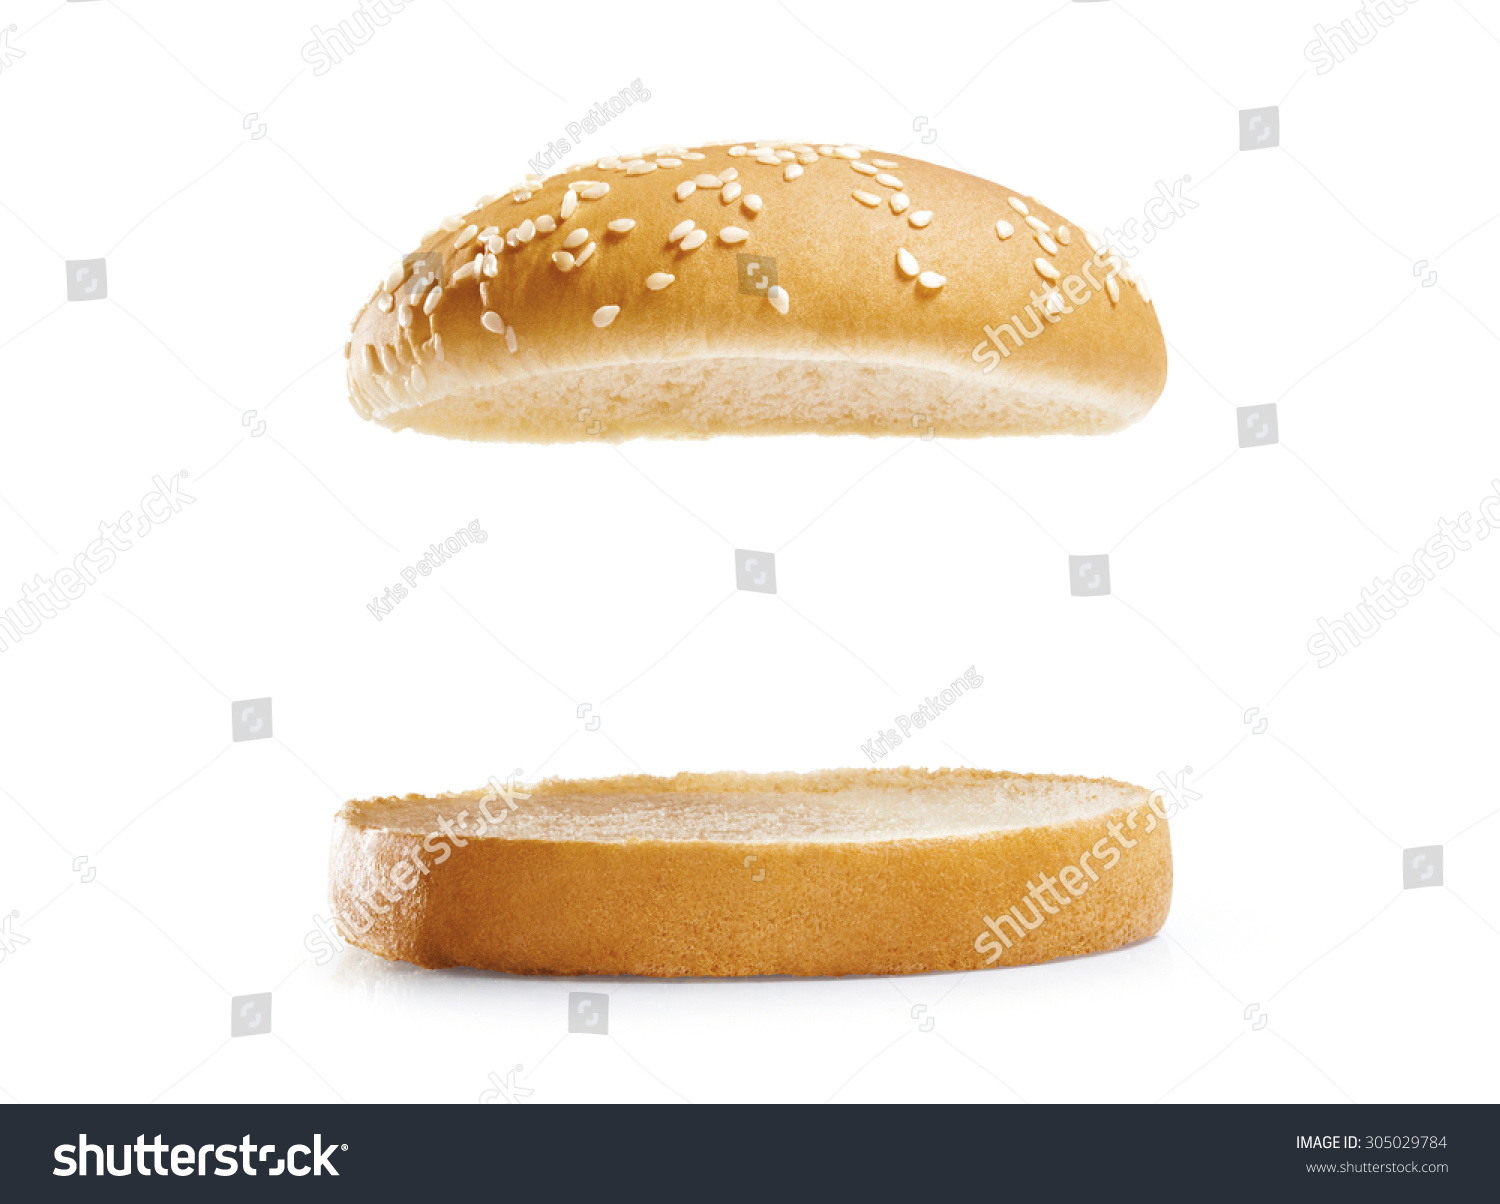 burger bread isolated on white background